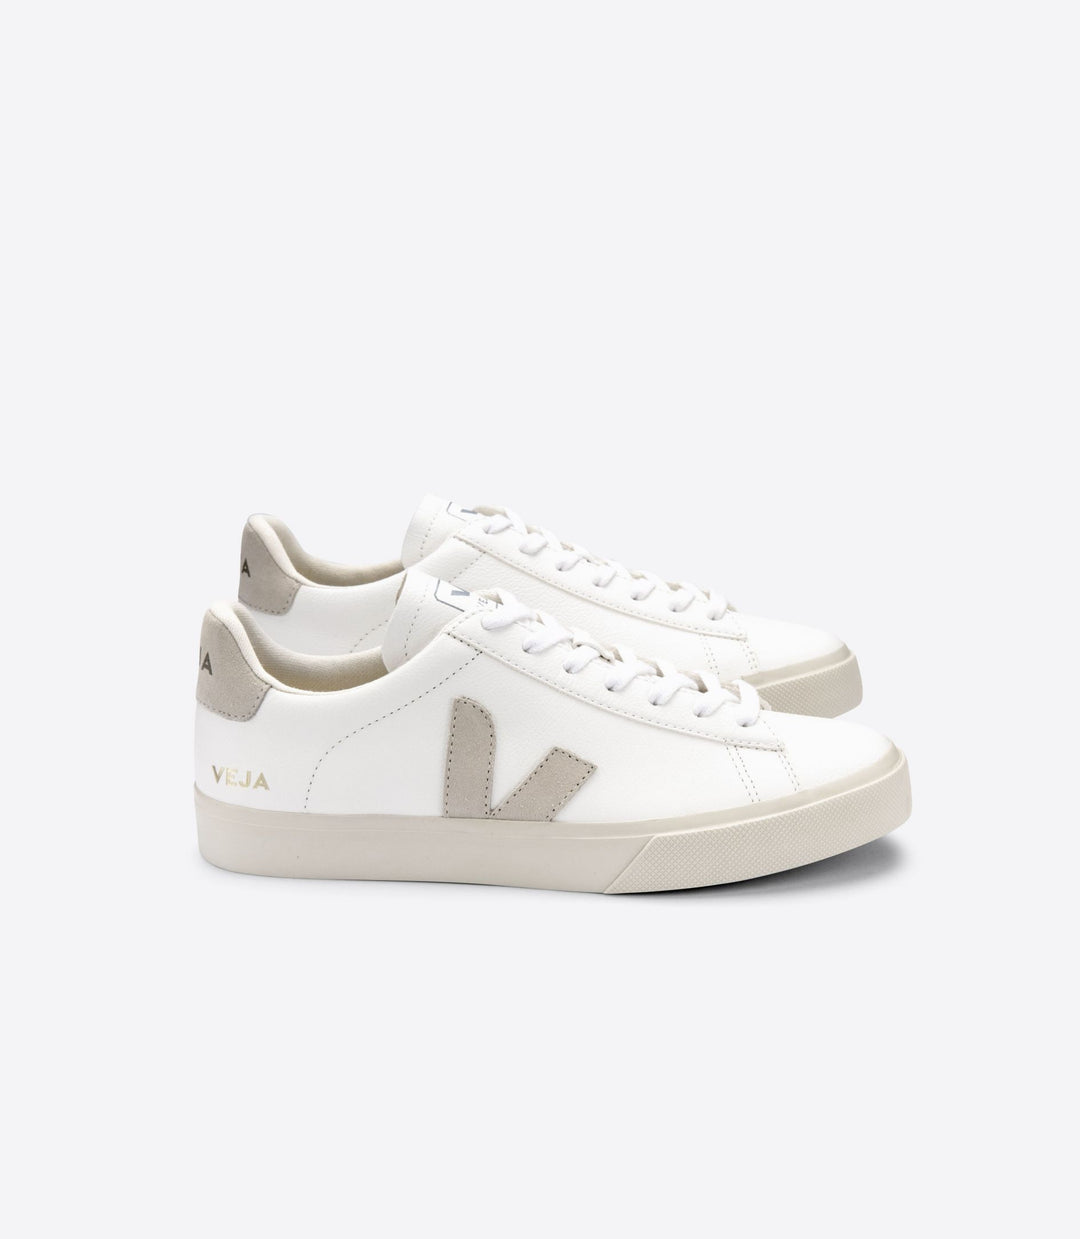 VEJA Women's Campo Chromefree Leather Extra White Natural Suede Sneaker